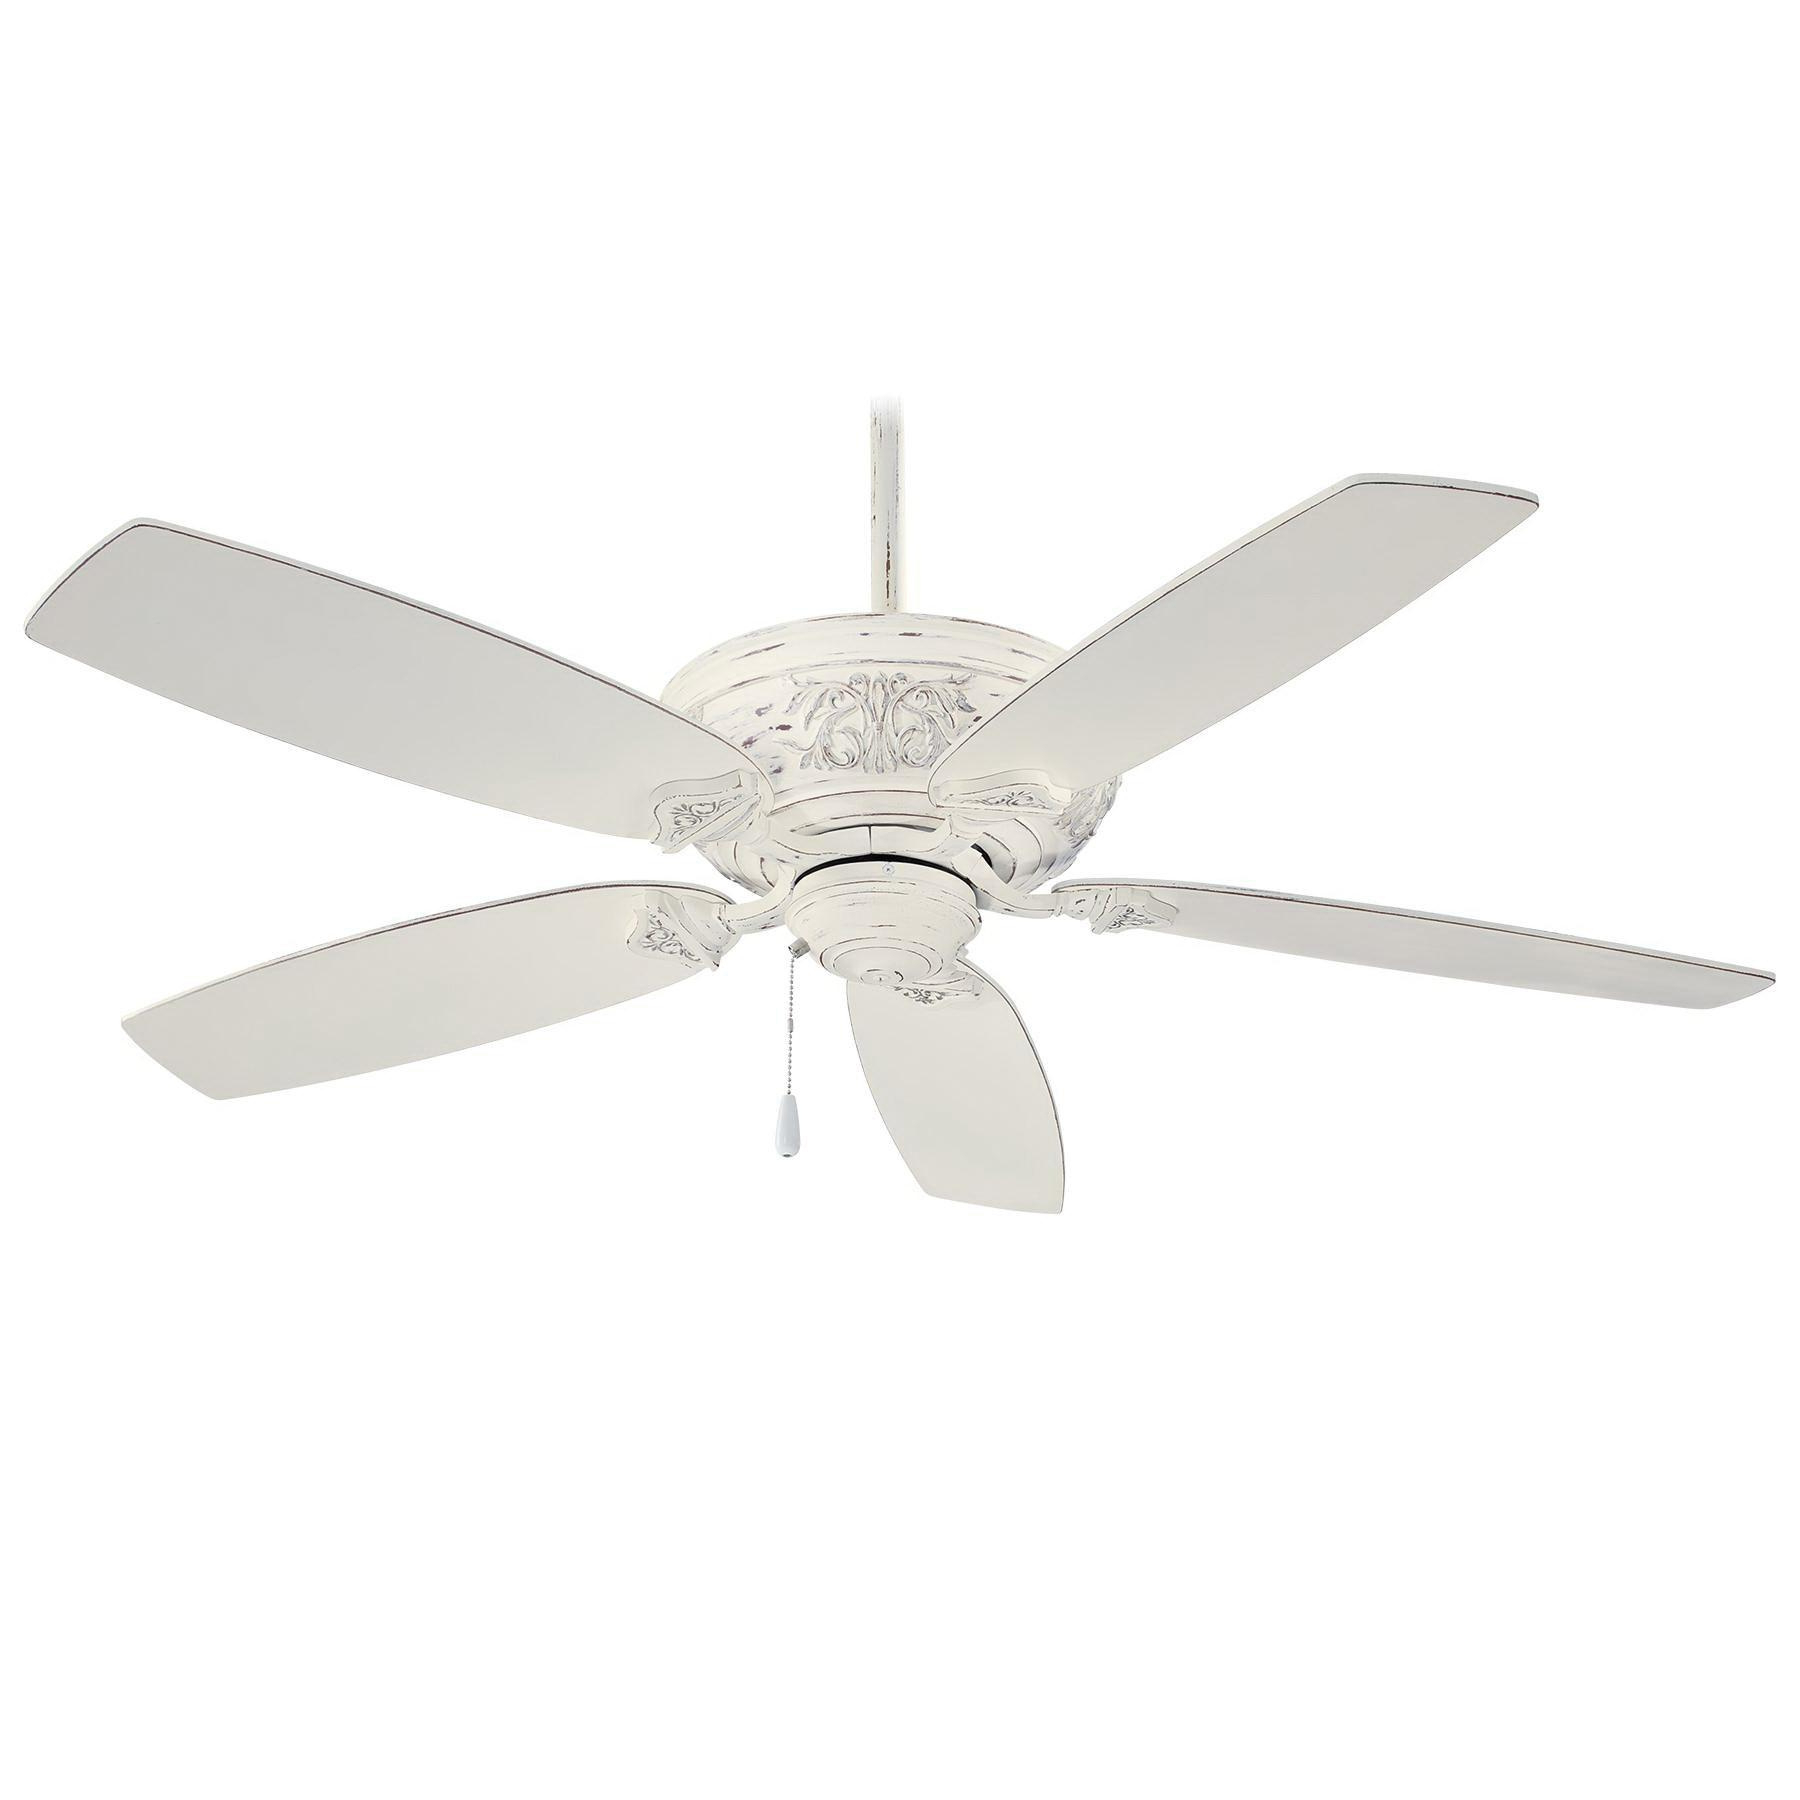 Newest Minka Aire F659 Pbl Interior Ceiling Fan 54 Inch 5 Blade Provencal Blanc Classica Intended For Classica 5 Blade Ceiling Fans (View 8 of 20)